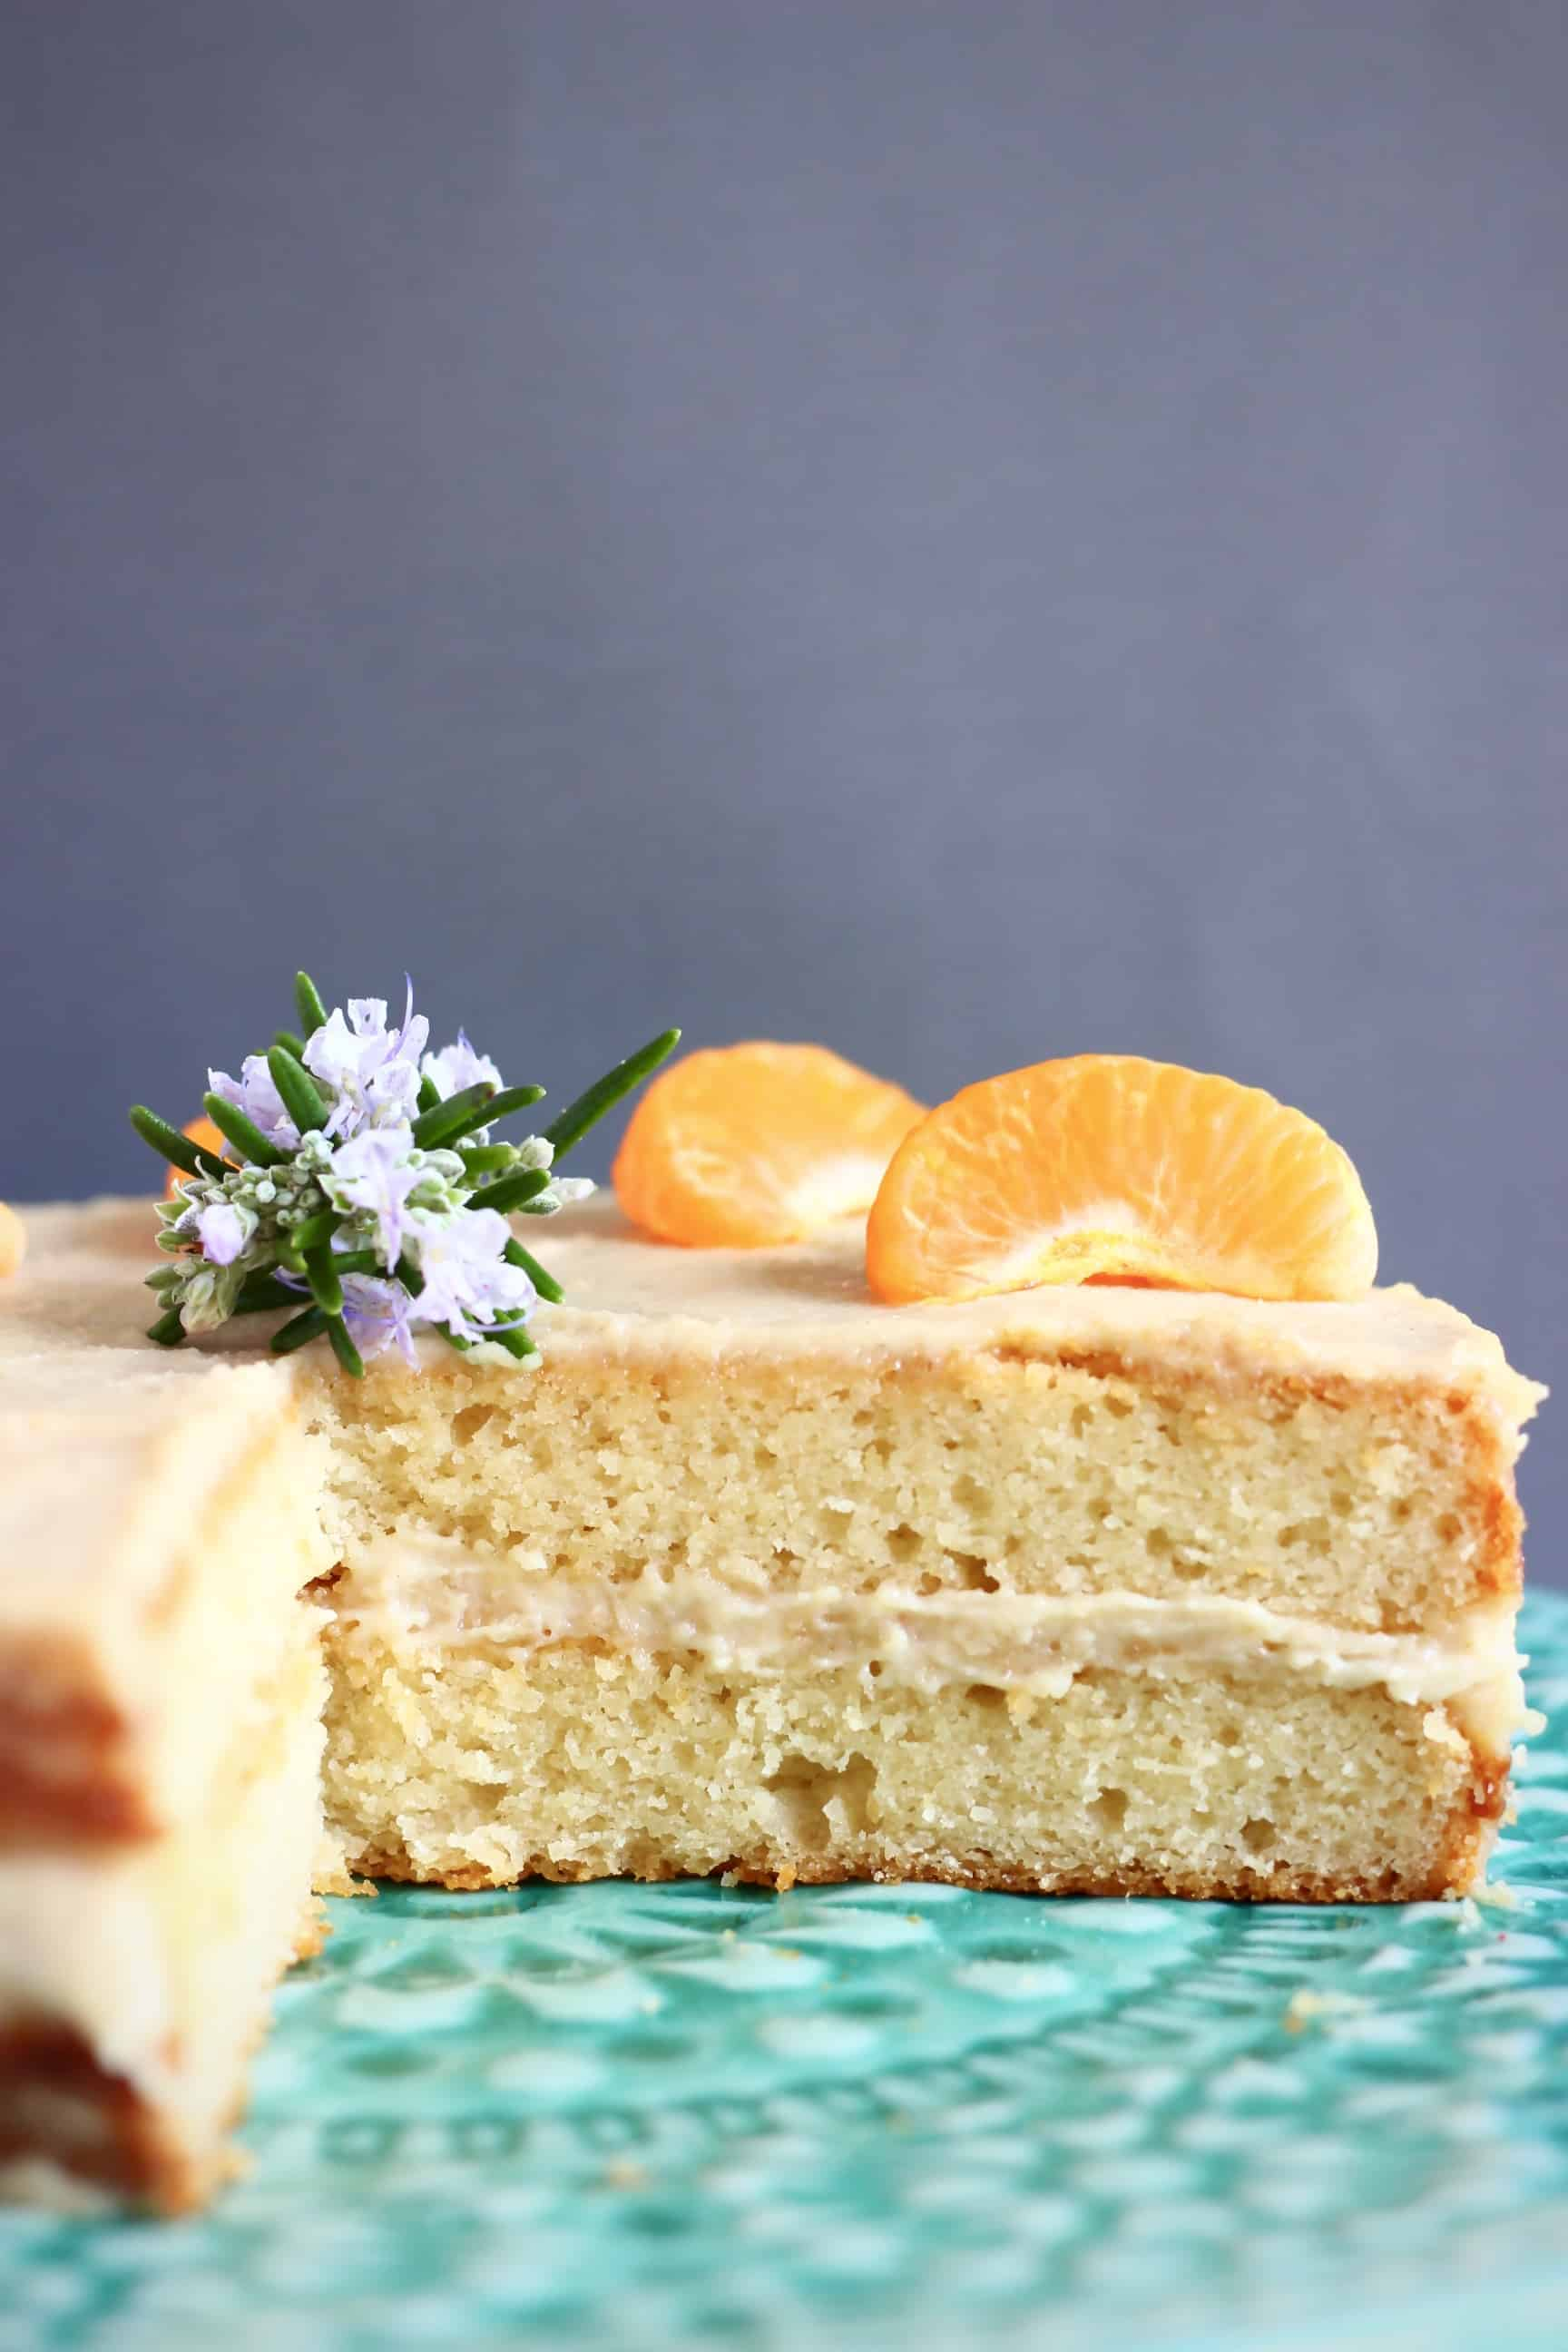 Sliced gluten-free vegan orange cake with buttercream topped with clementine segments